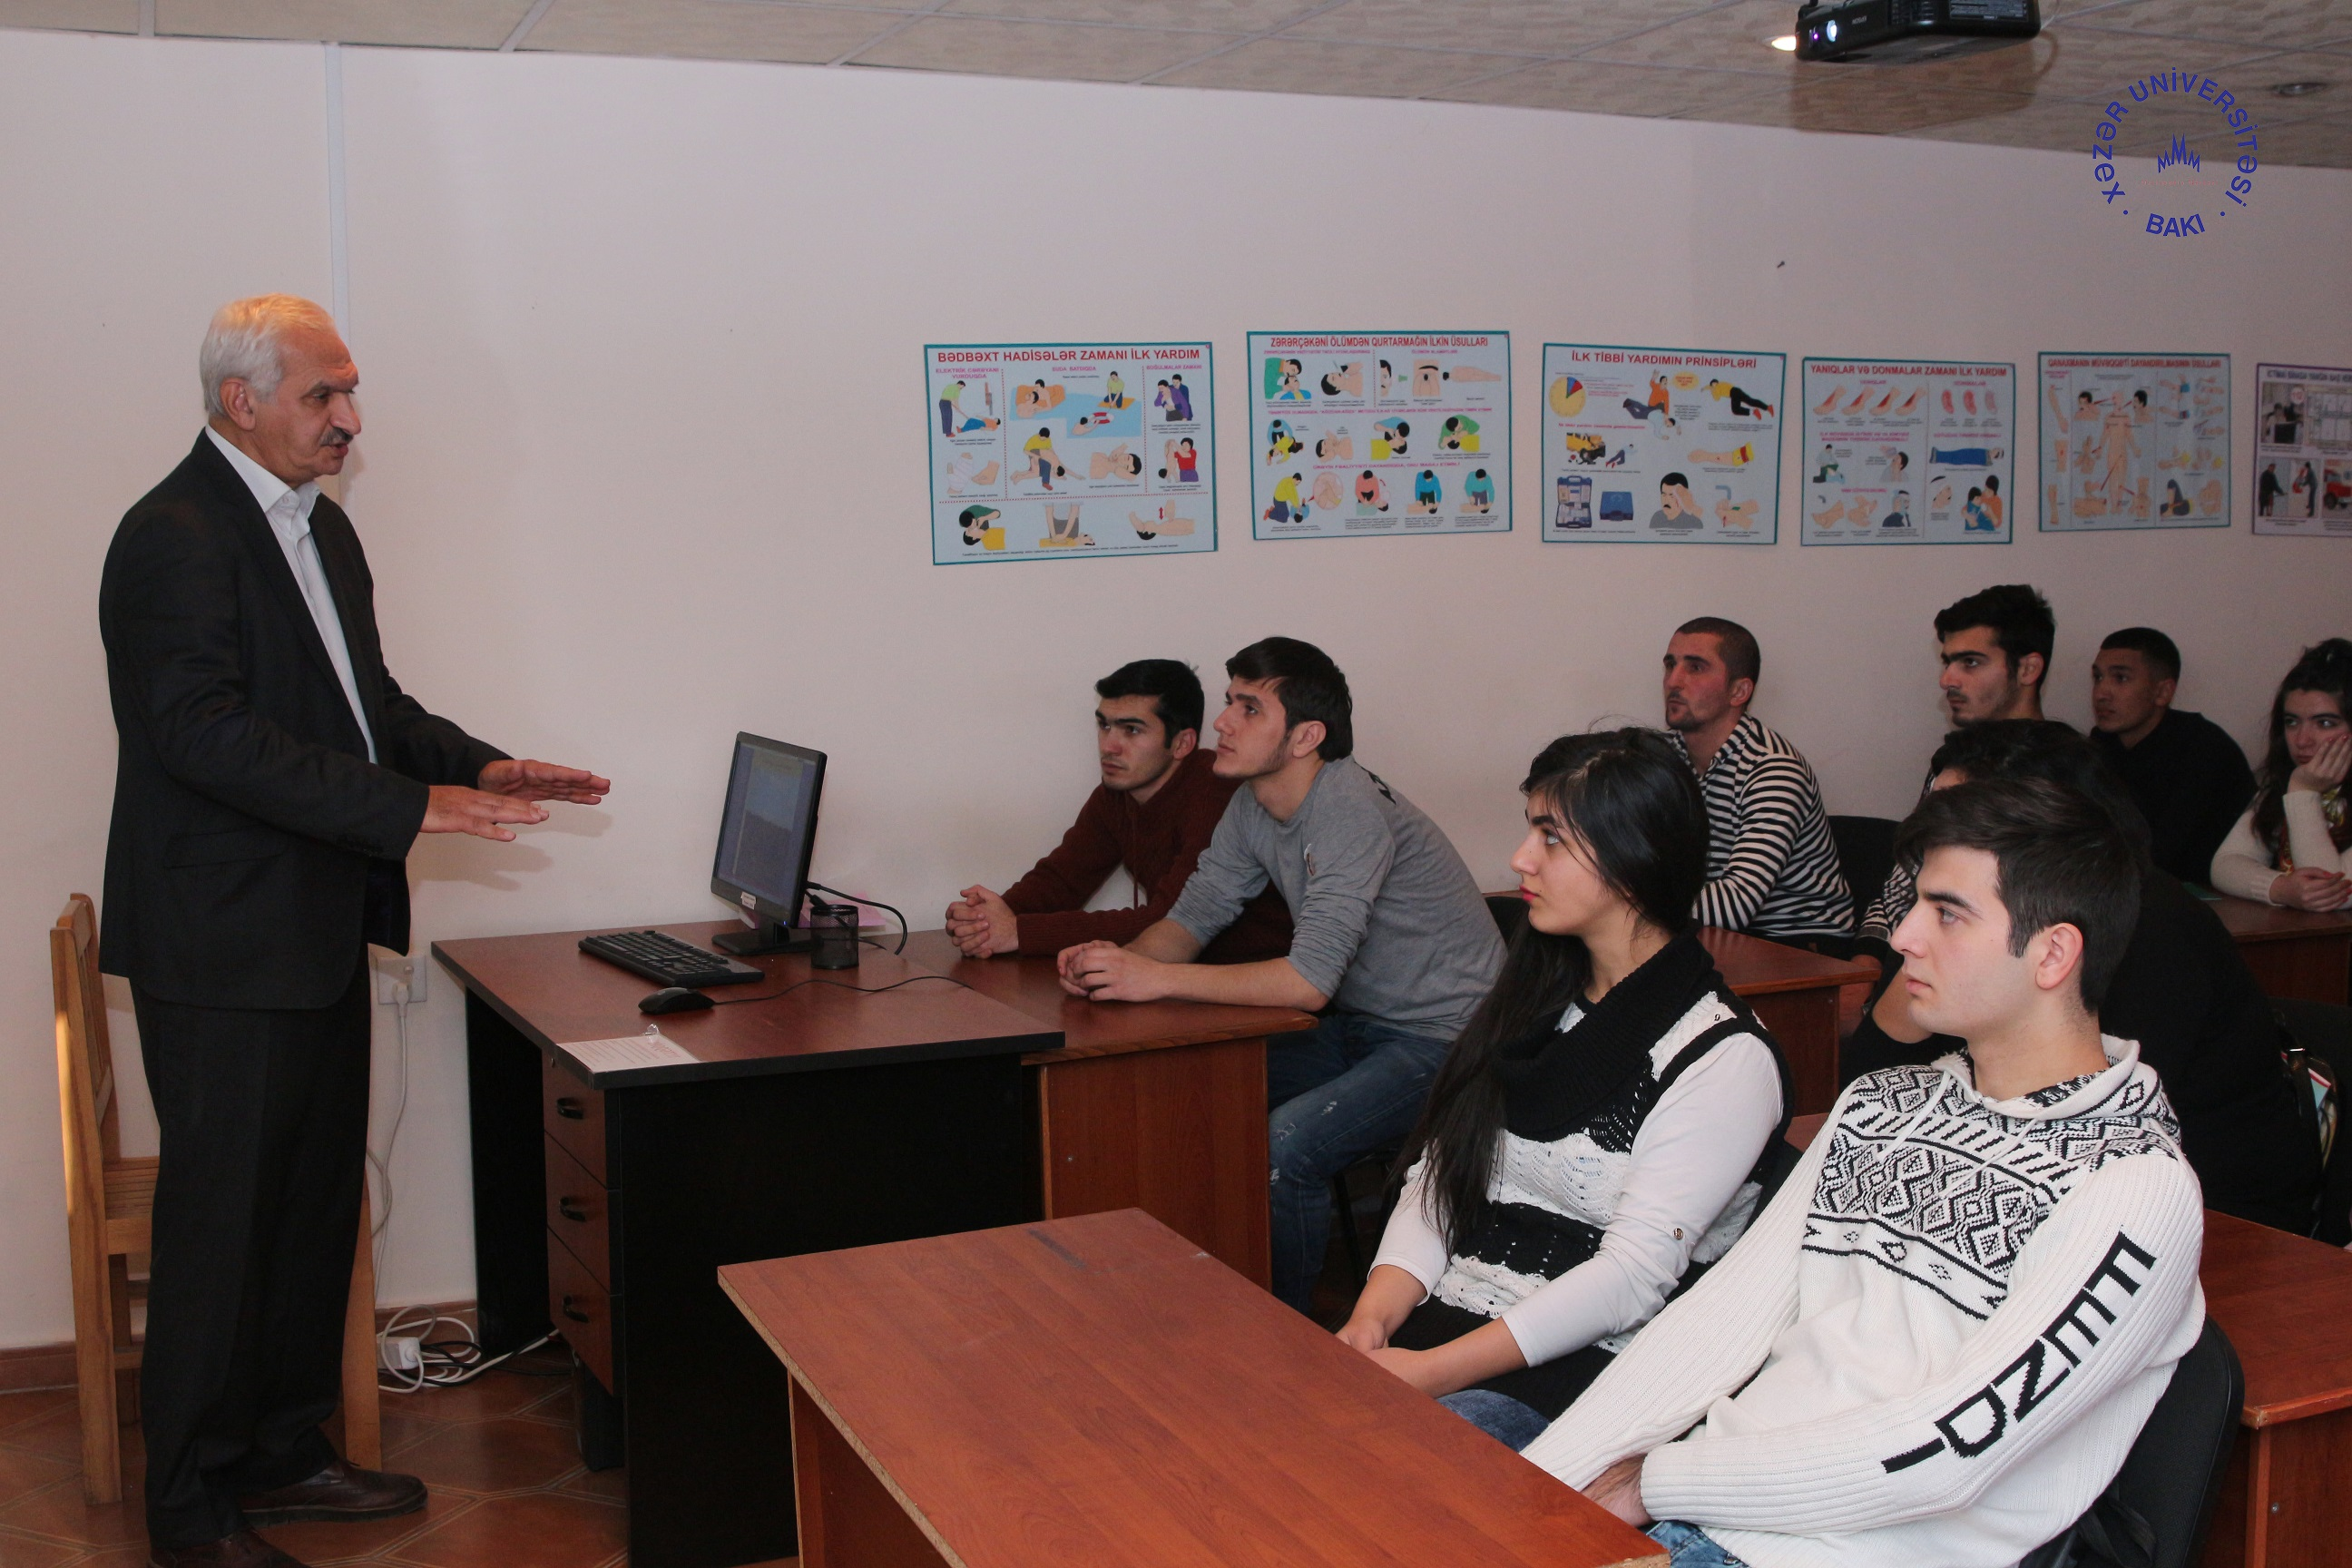 ANAS Archeologist Meets with Students